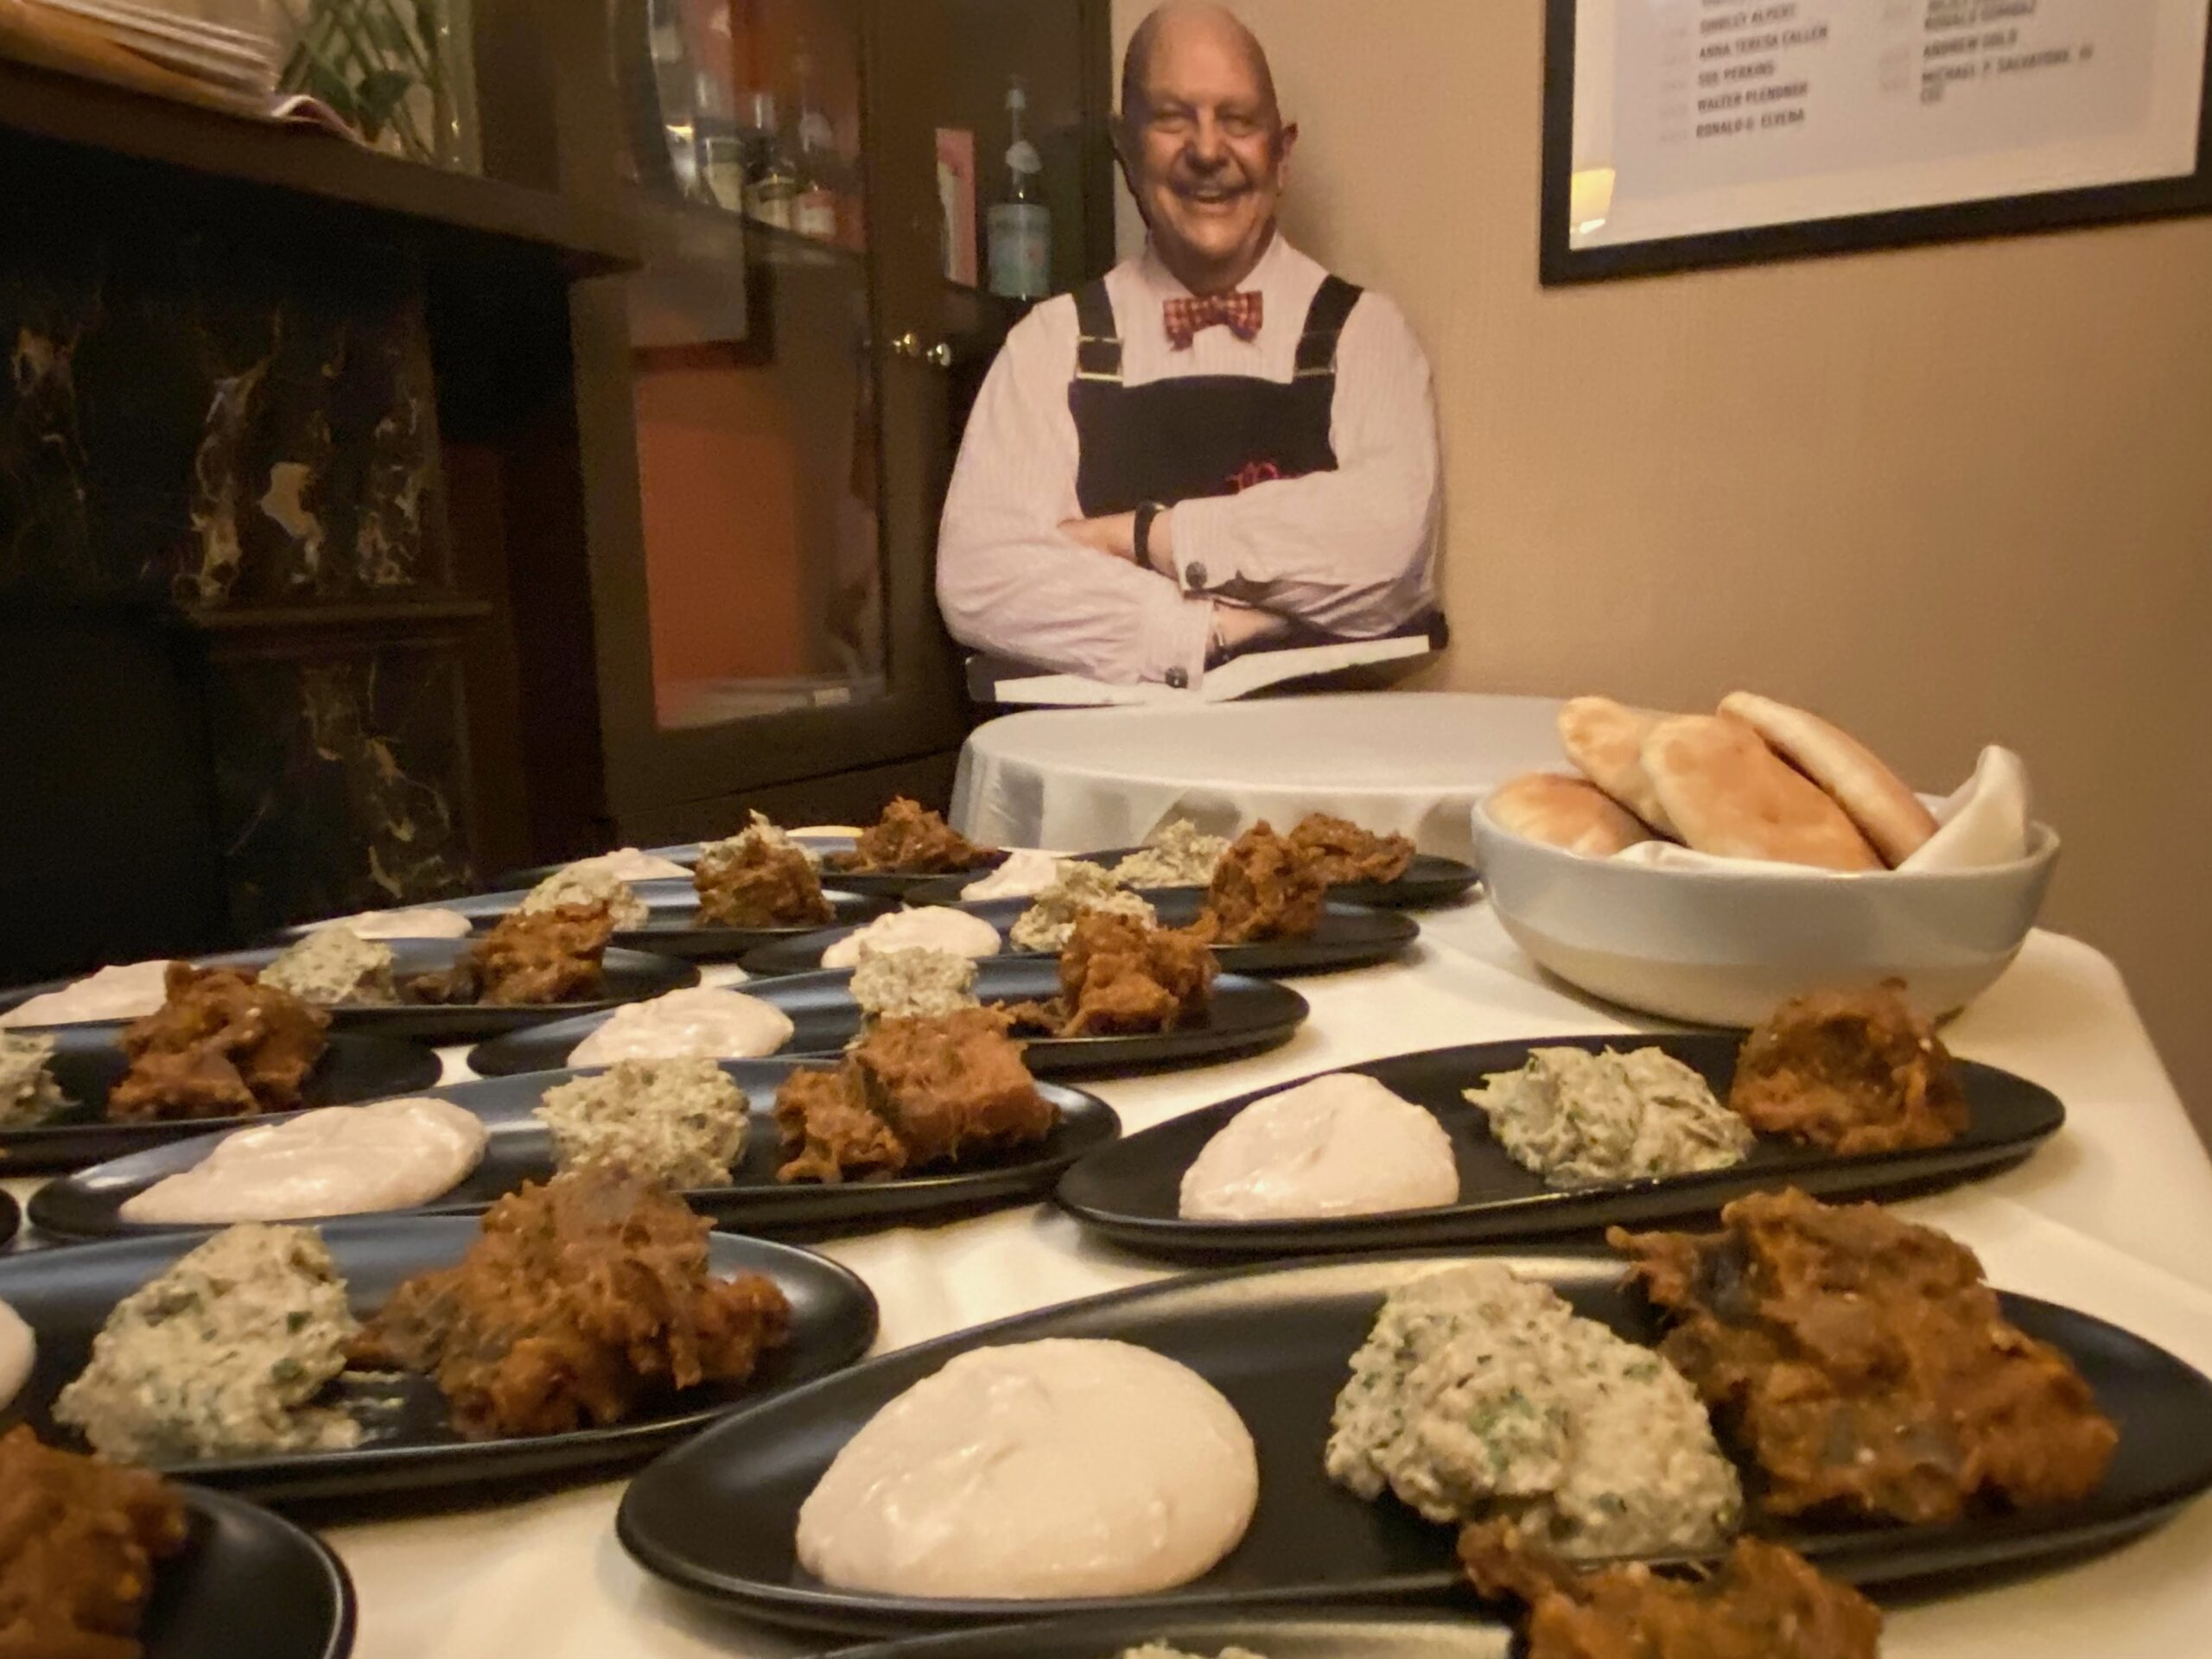 Behind the scenes at the prestigious James Beard House in Manhattan with Chef Avi Shemtov